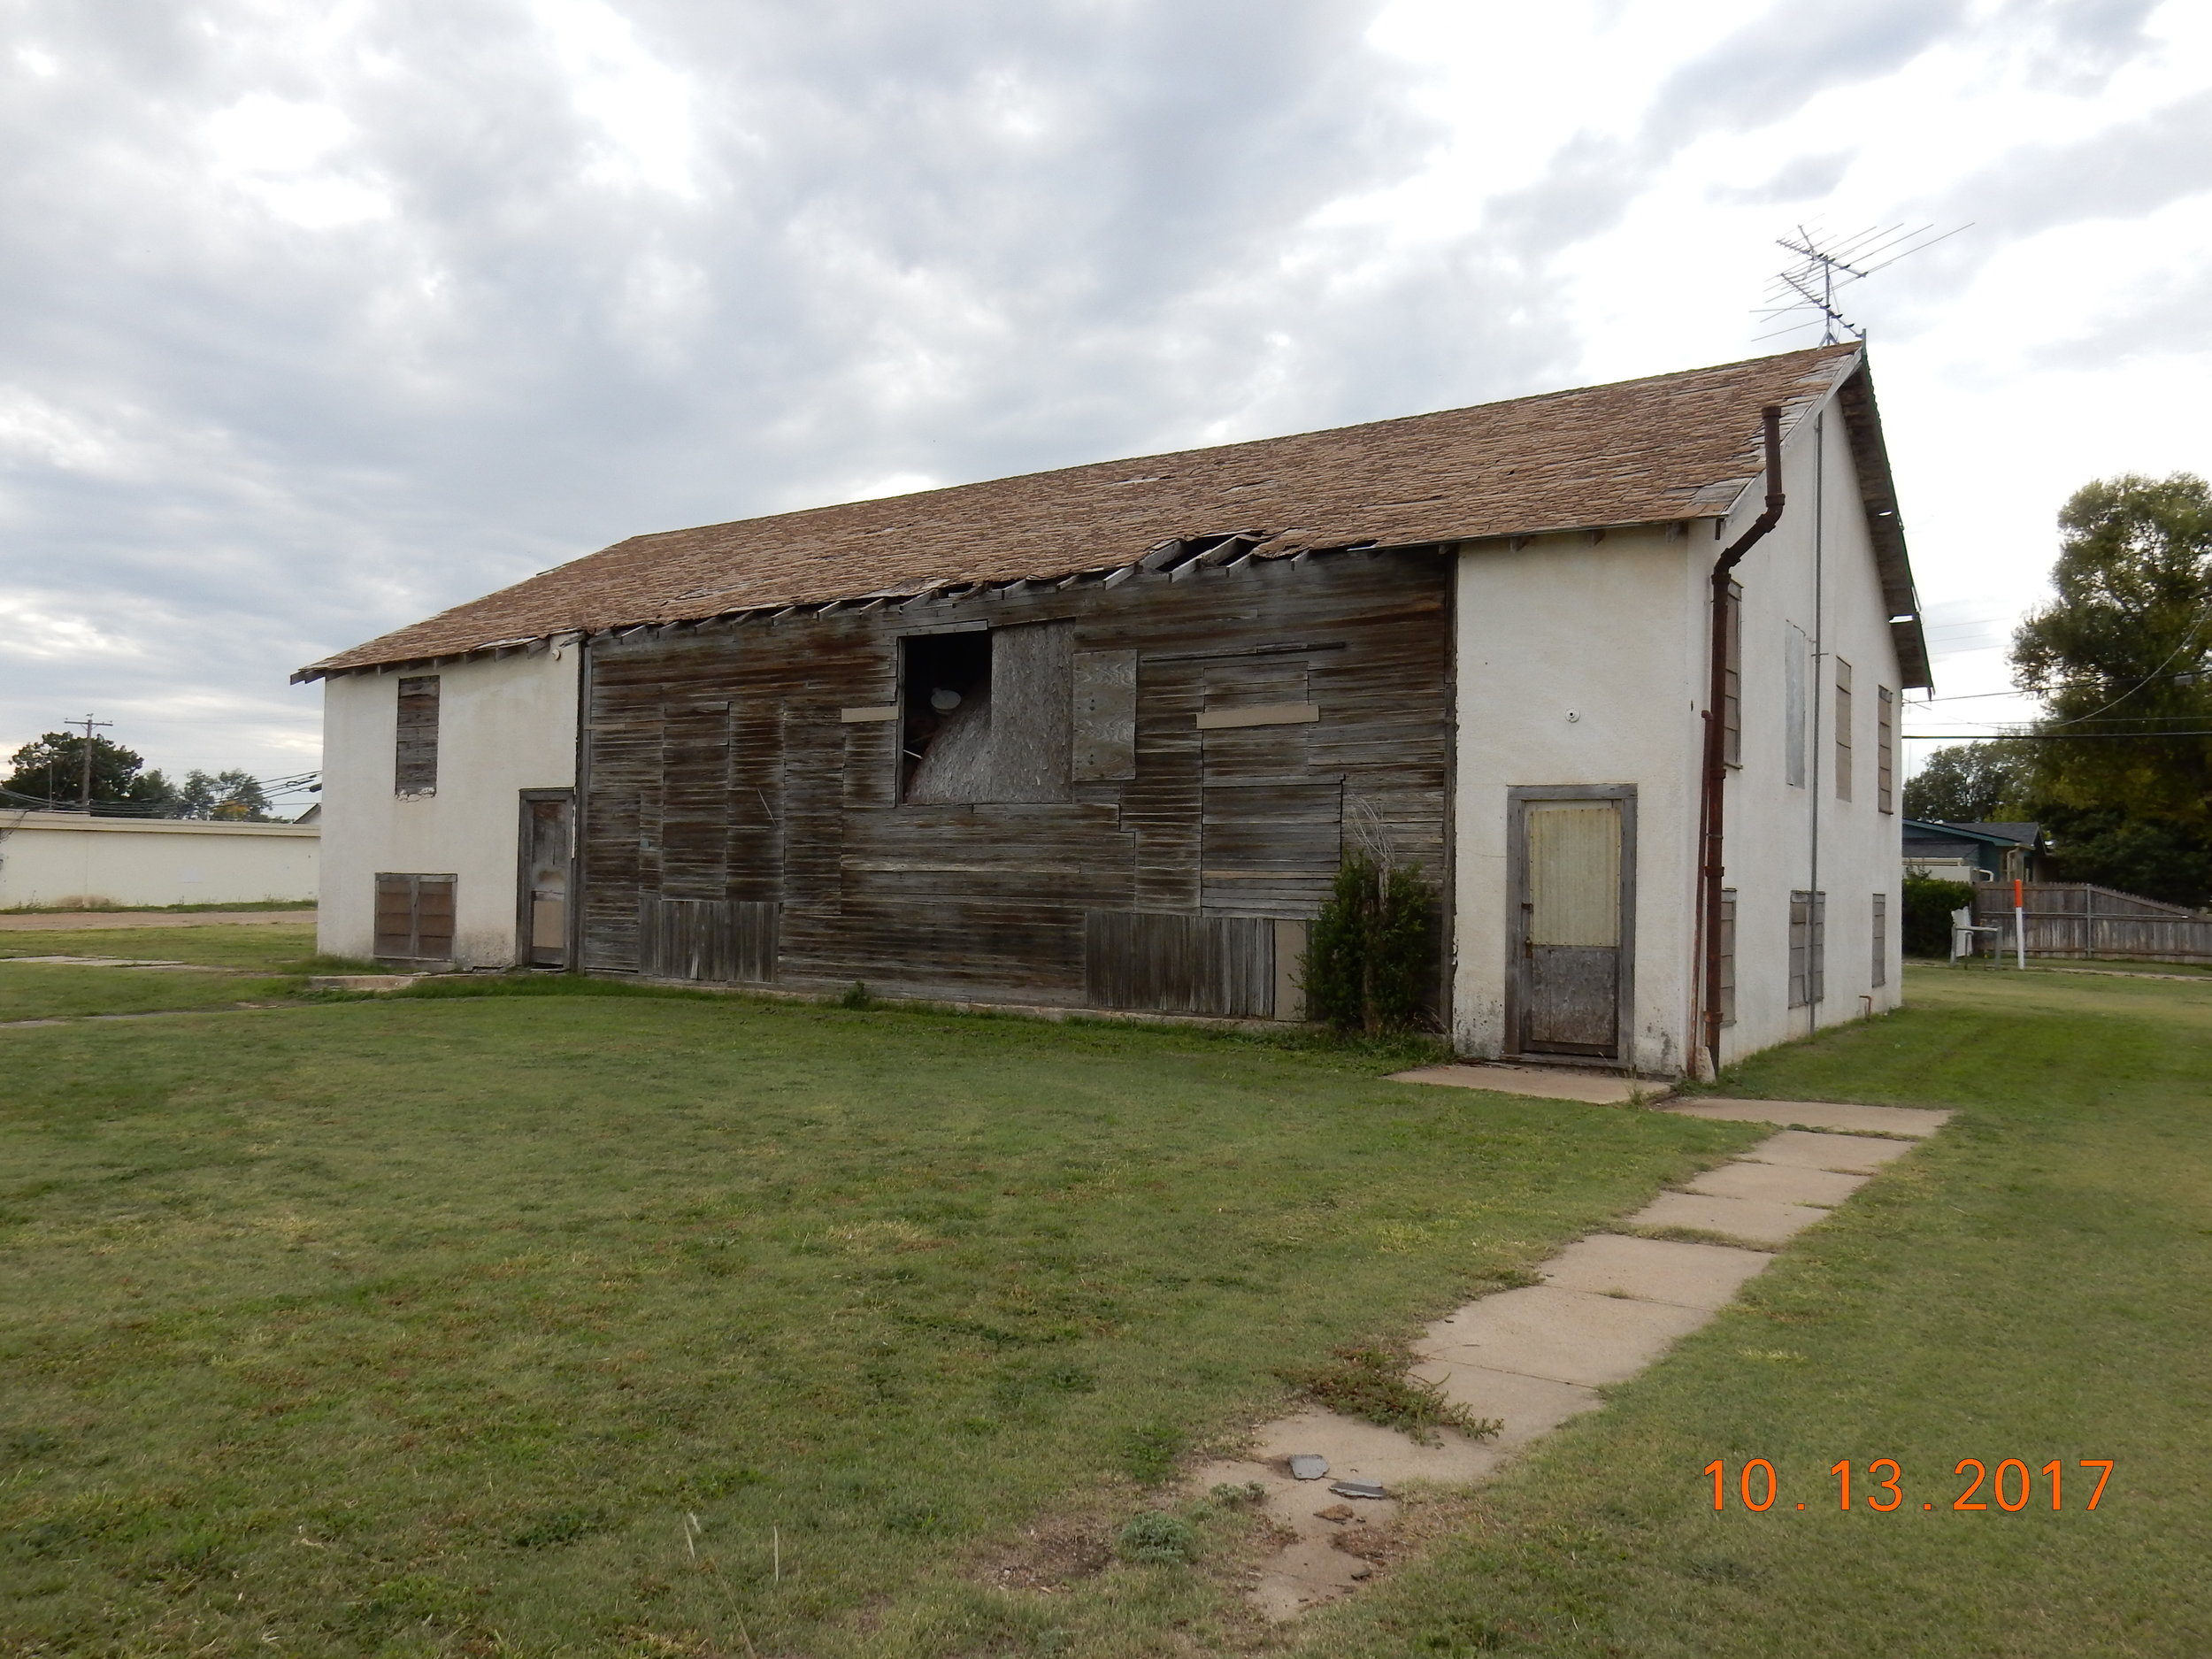 I know this blog tour is supposed to be about WHY STUFF MATTERS, but this old house speaks to anyone who's read OLD BUILDINGS IN NORTH TEXAS.